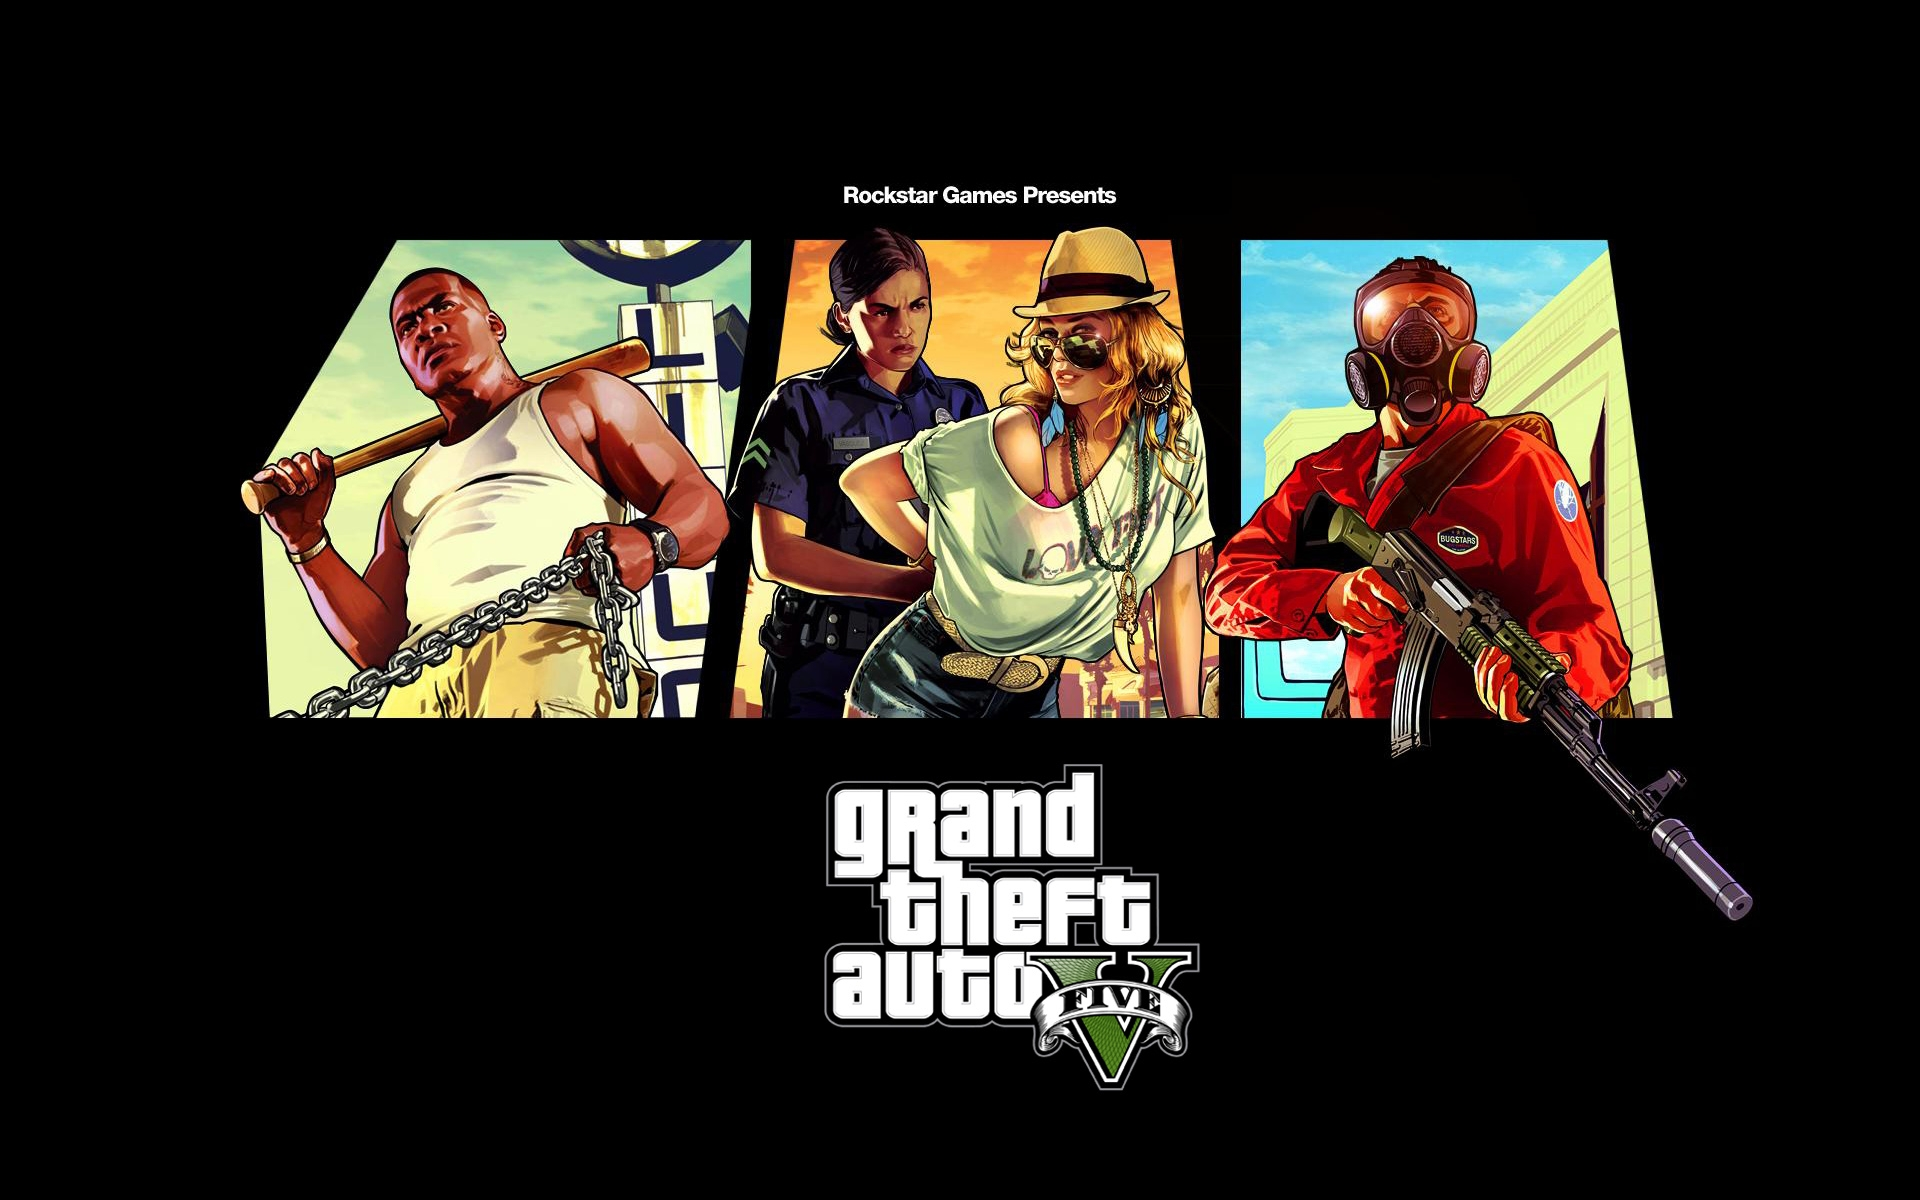 Grand Theft Auto 5 Wallpaper: Theft Wallpapers, Photos And Desktop Backgrounds Up To 8K